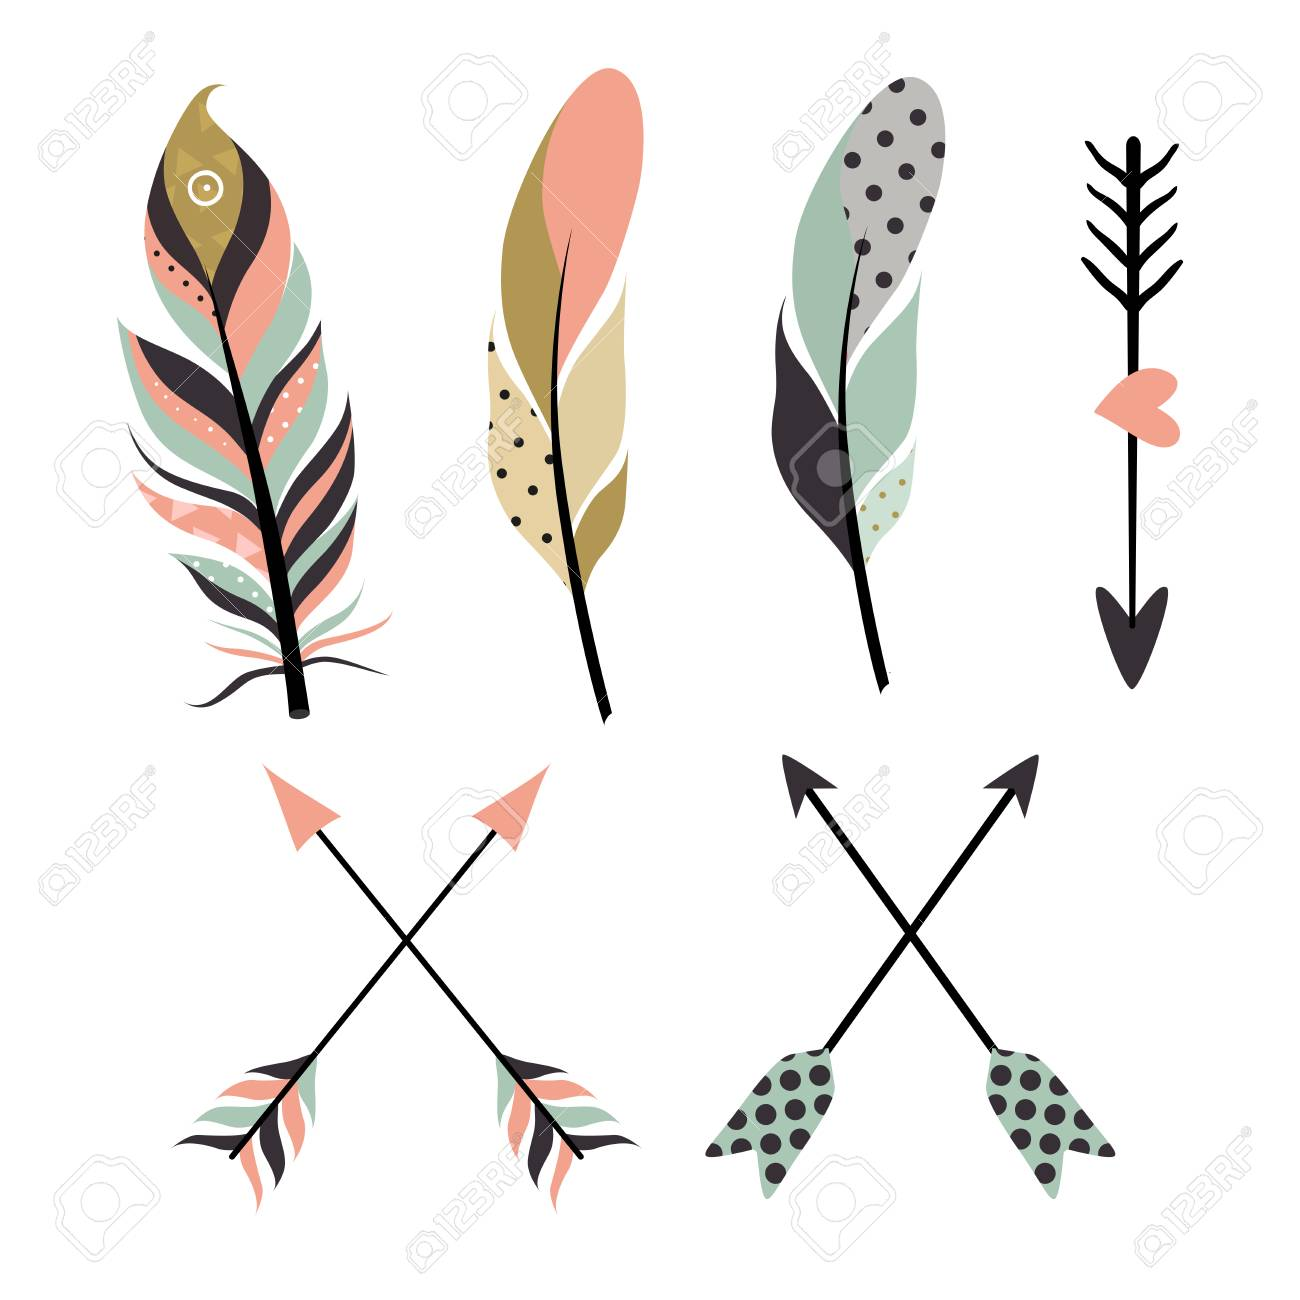 Set of tribal feathers and arrows on white background